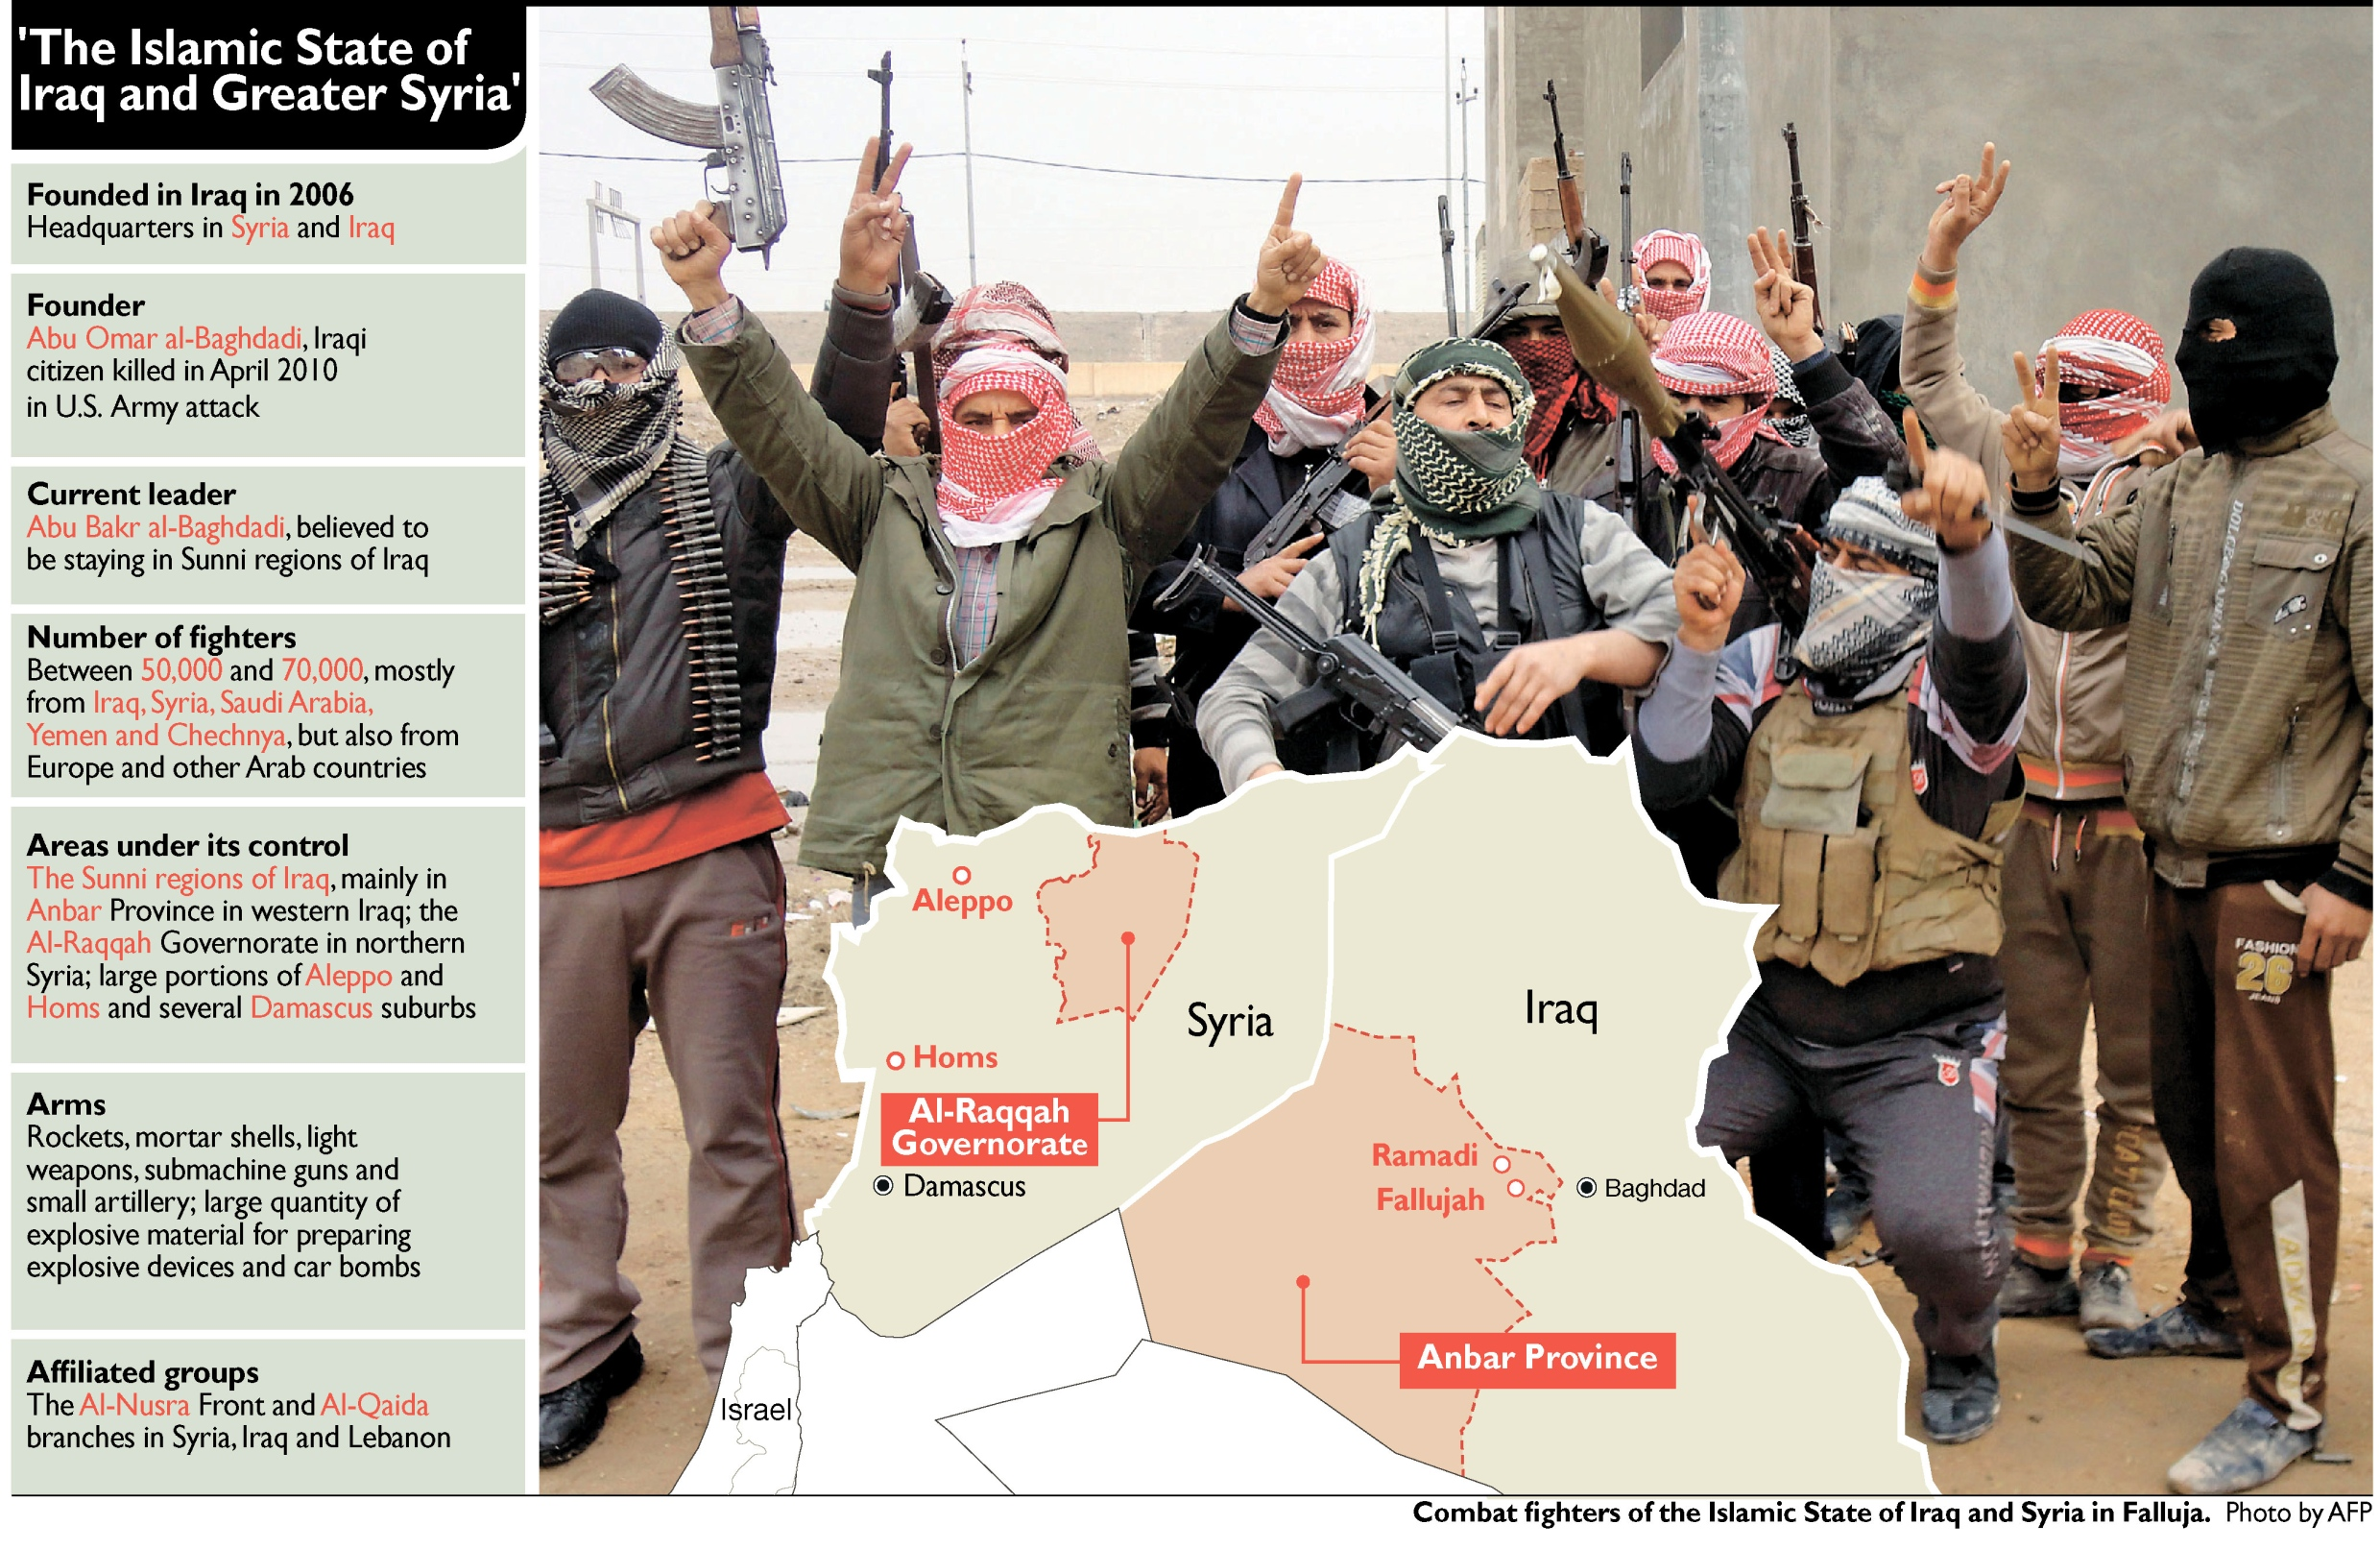 isis in iraq As the eventual battle for mosul draws closer, here's a revealing look inside the country's fight with isis and itself.